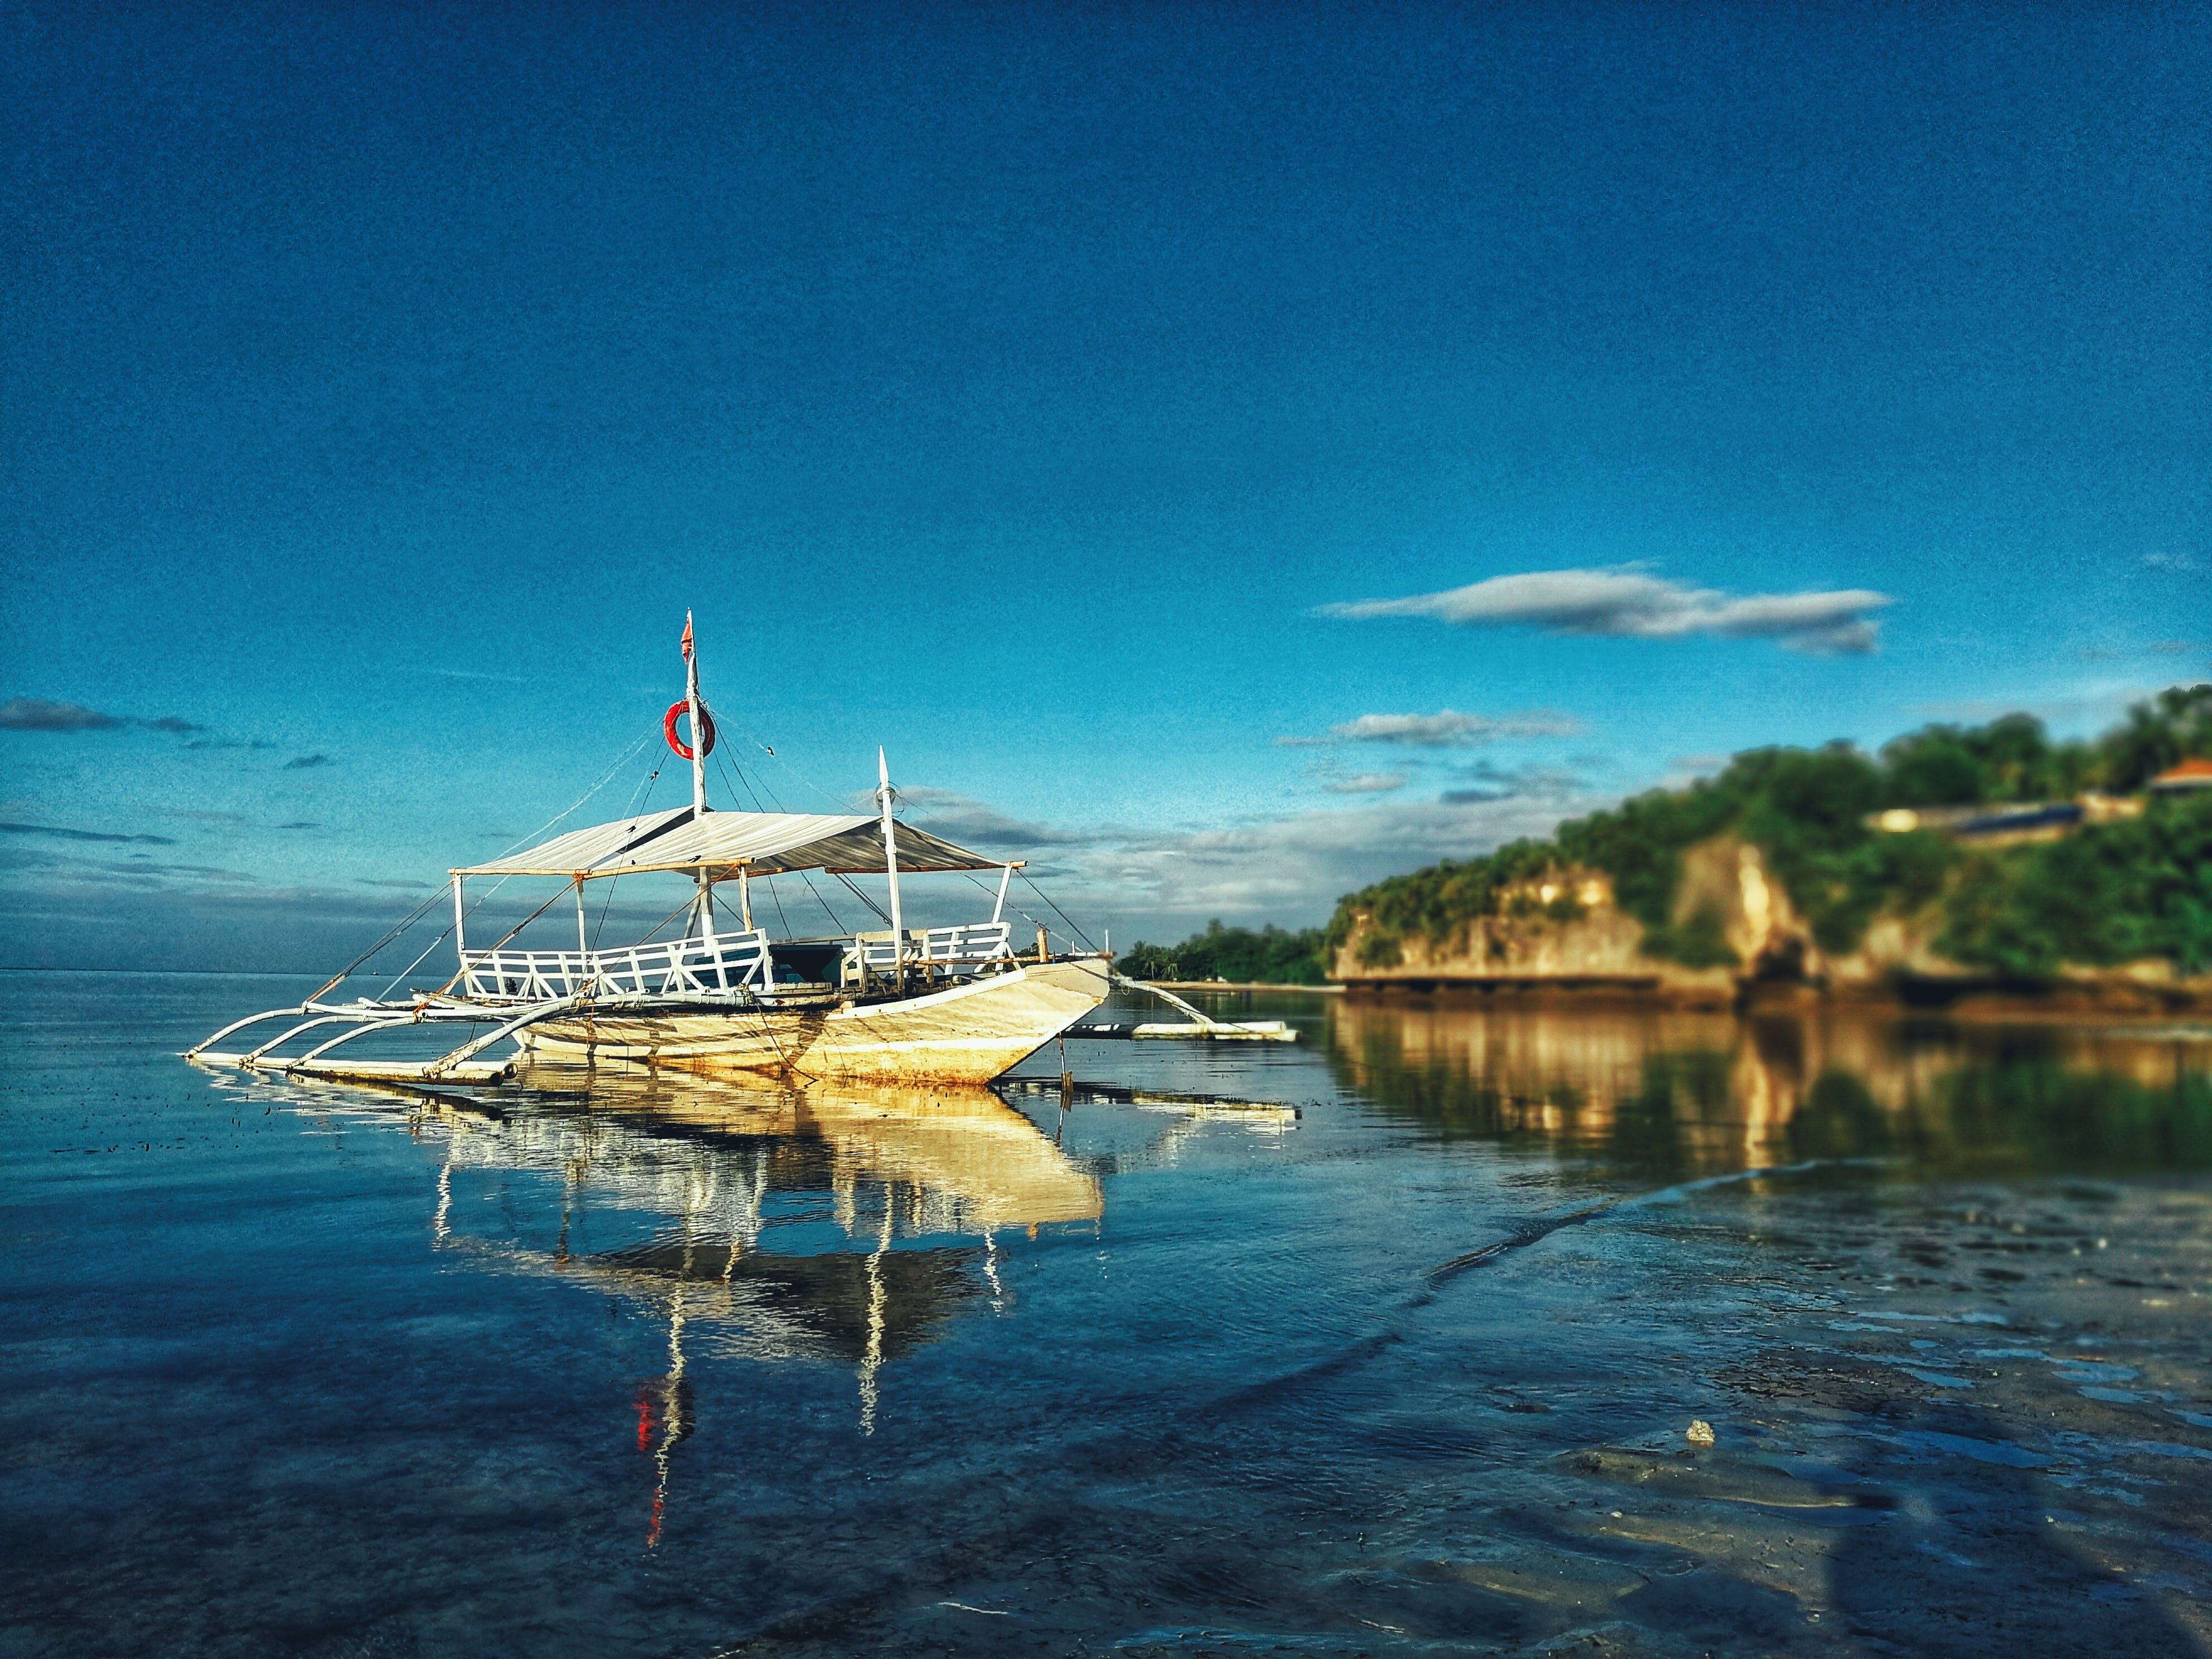 Free stock photo of boat, by the sea, early morning, Philippines